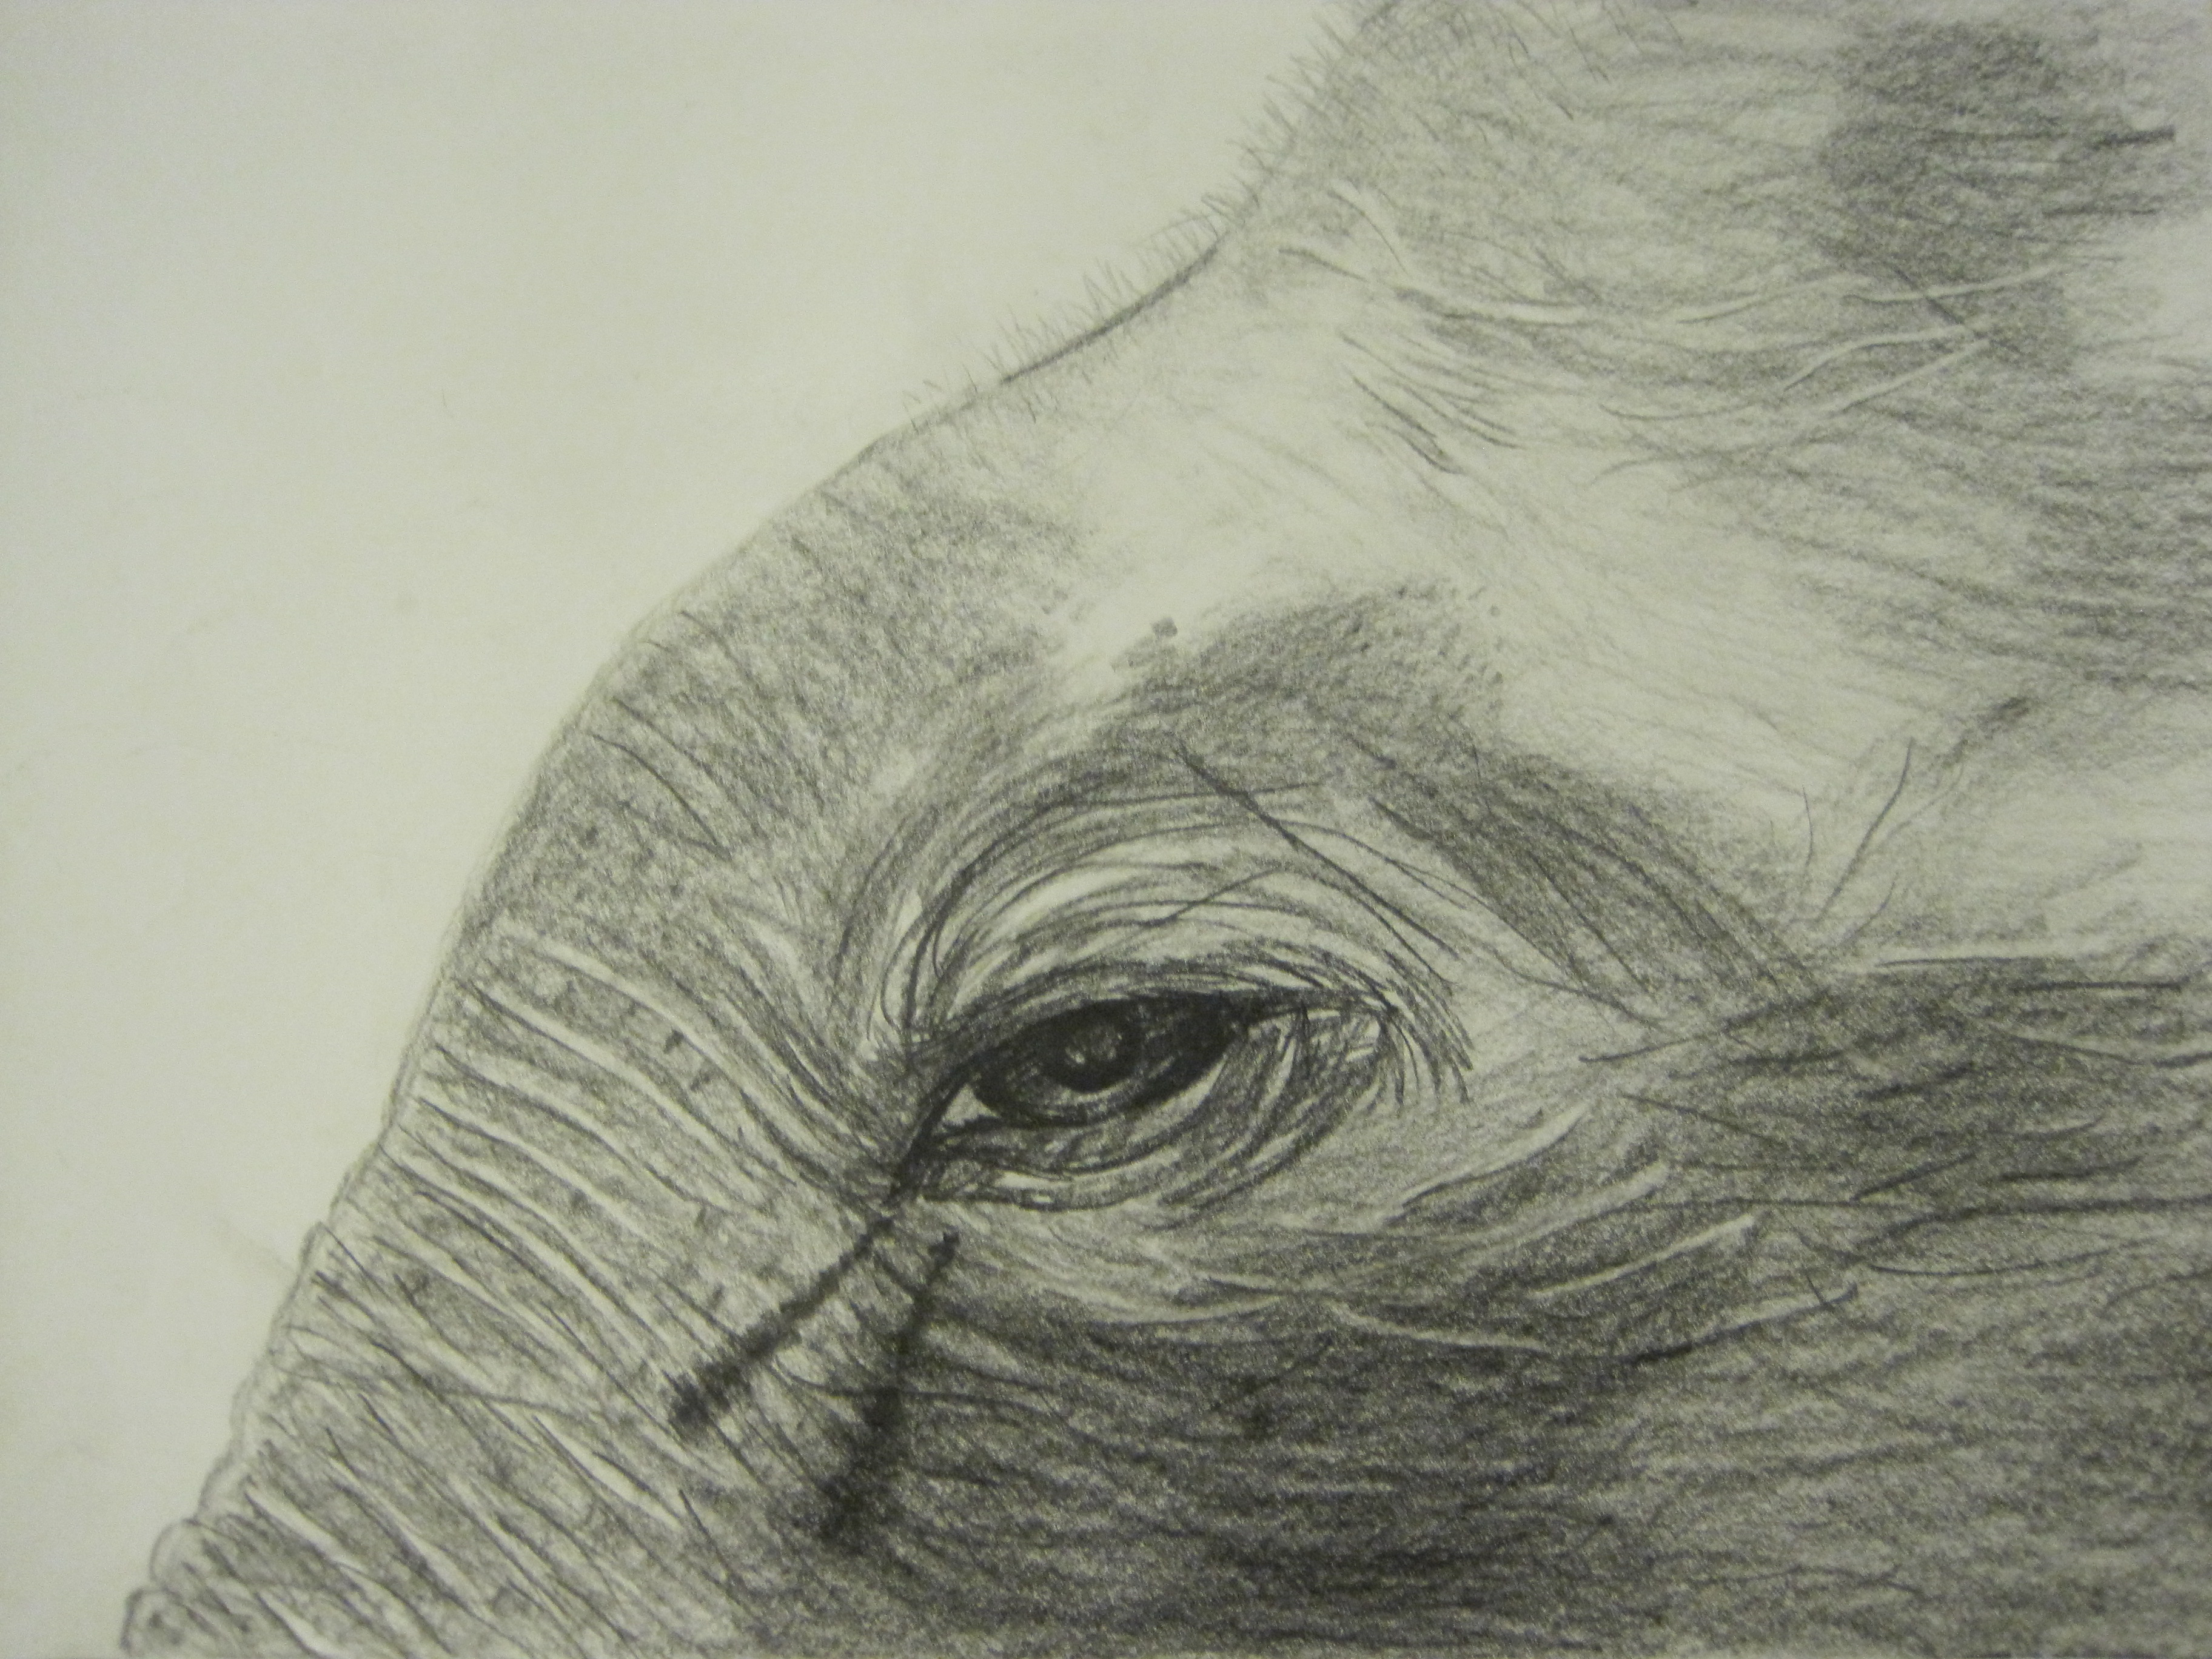 Elephant - I worked hard to put in a lot of detail, but still didn't manage it all